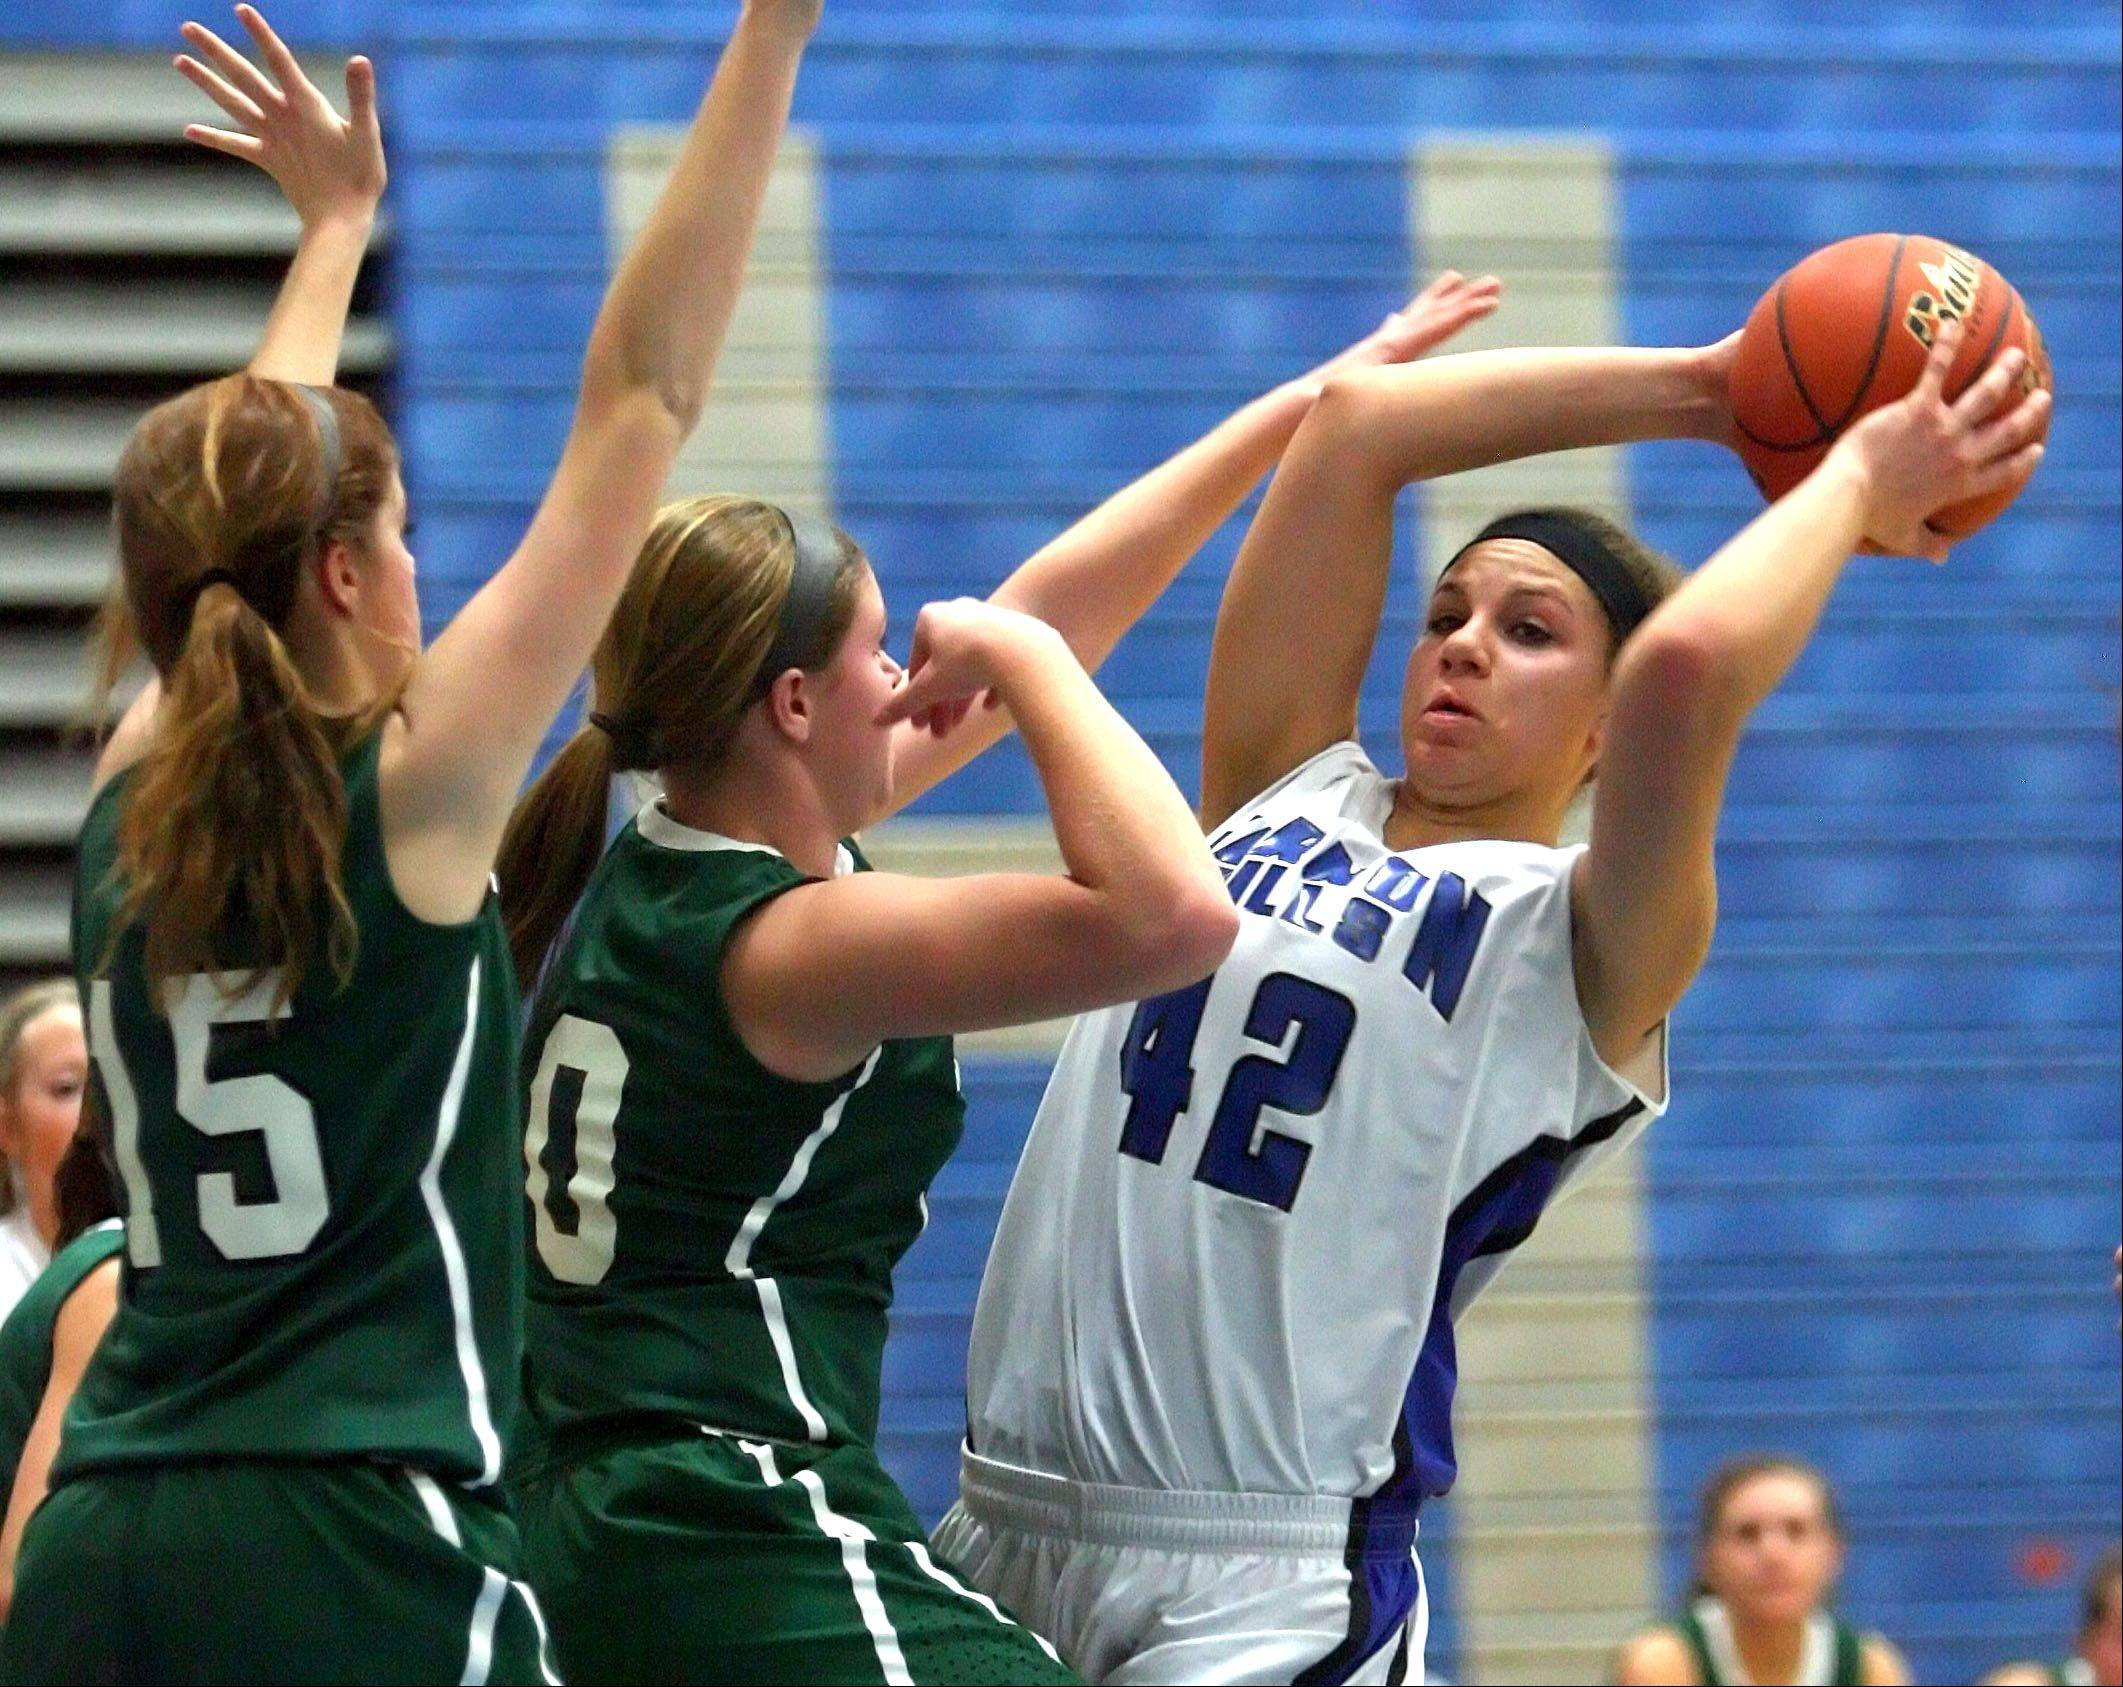 Vernon Hills' Lauren Webb, right, looks to pass with Grayslake Central's Lauren Spalding and Maddy Miller defending.